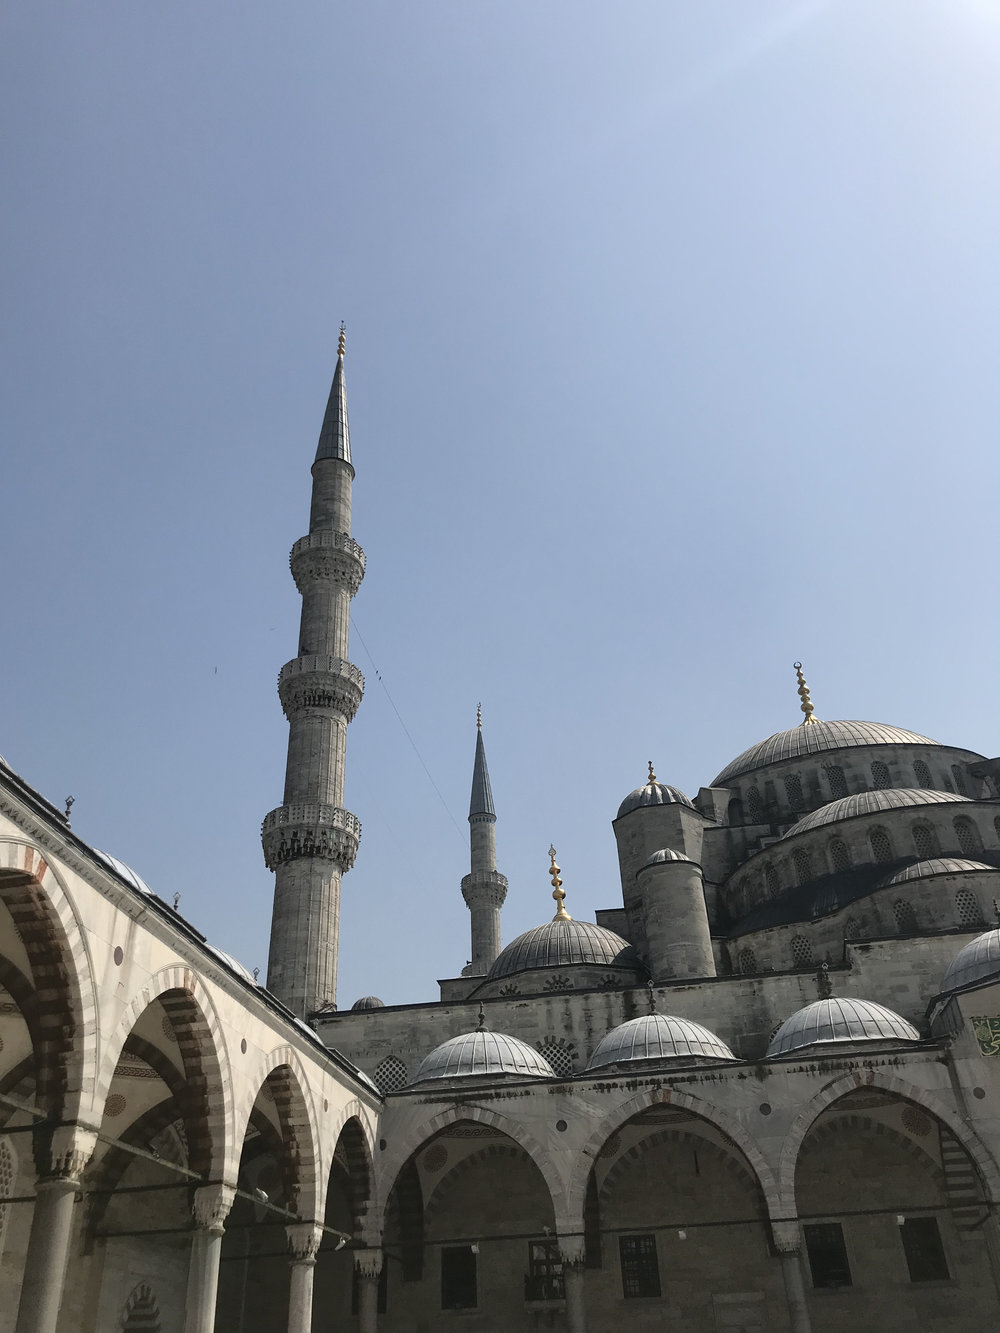 Mosque near Hagia Sophia